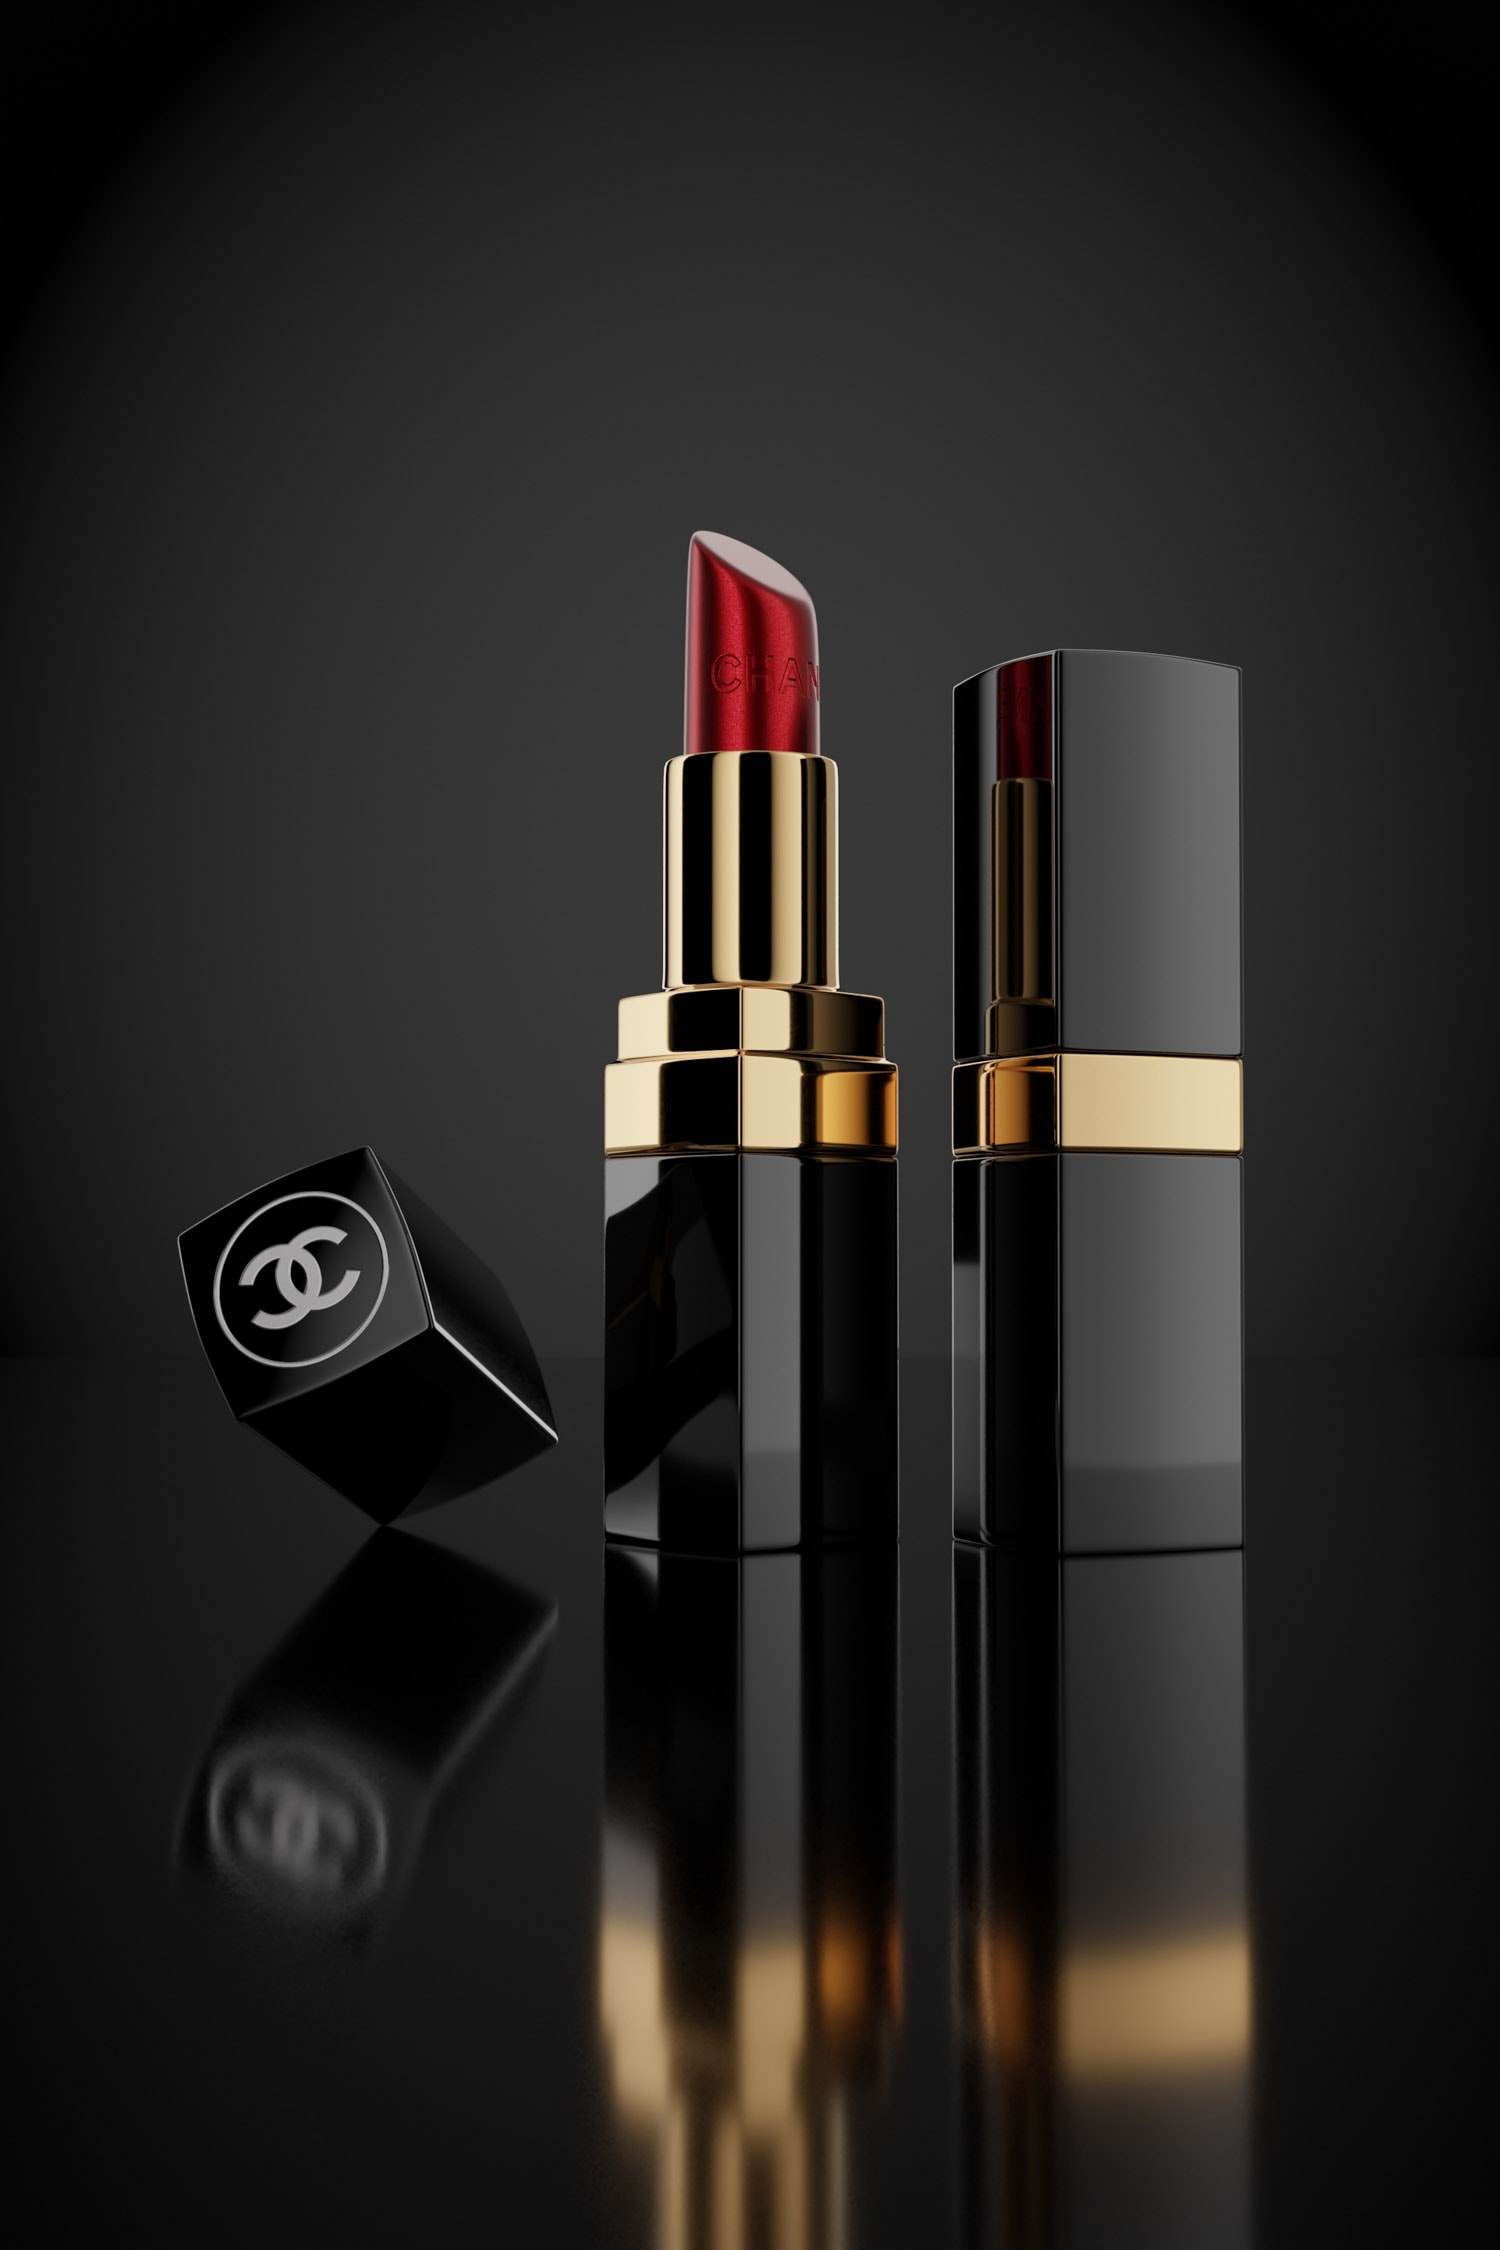 CGI cosmetic assignemnt for Chanel